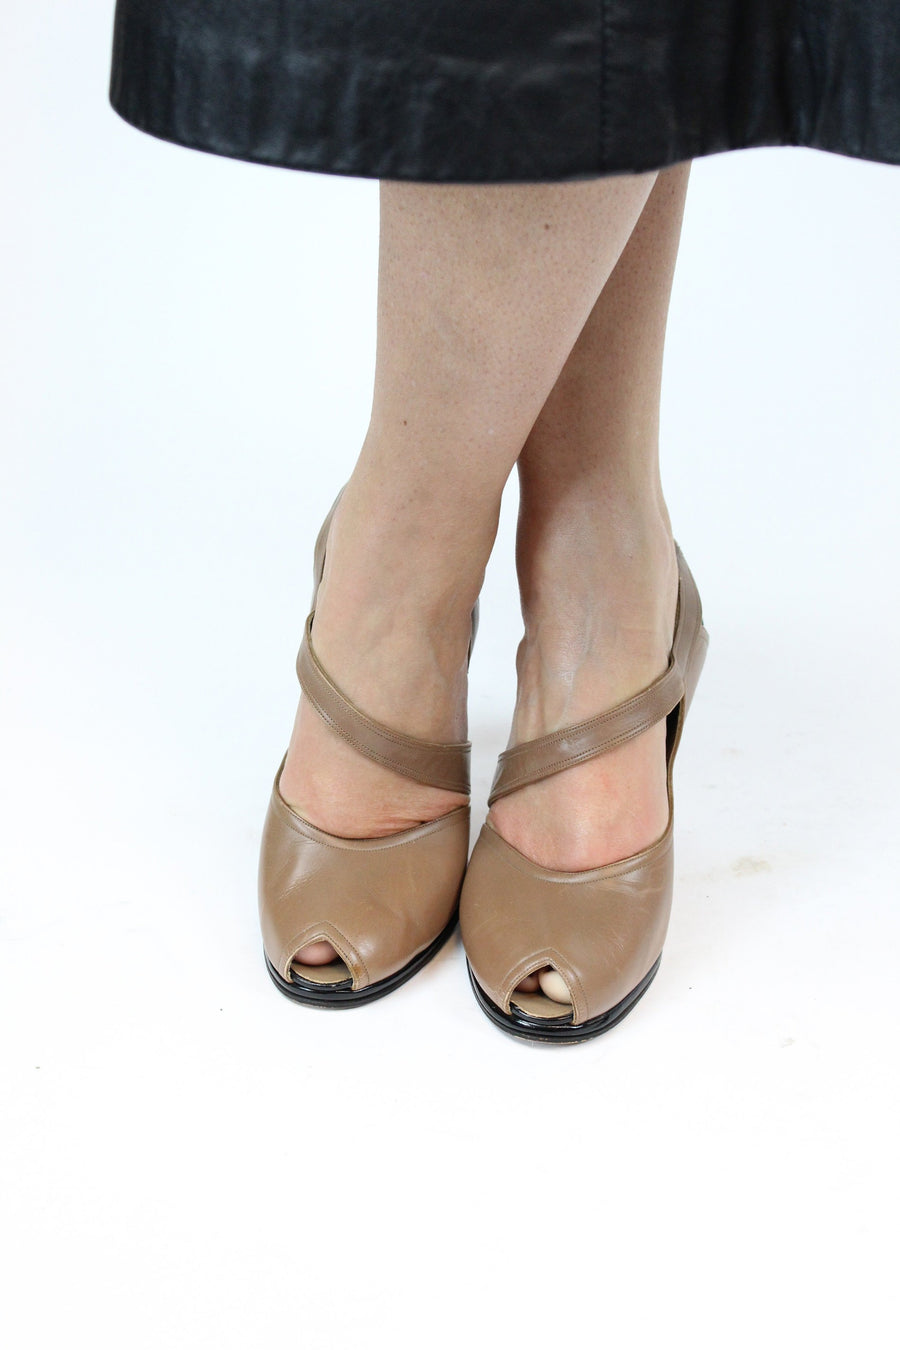 1950s I. Miller pumps | asymmetrical sling back | size 6